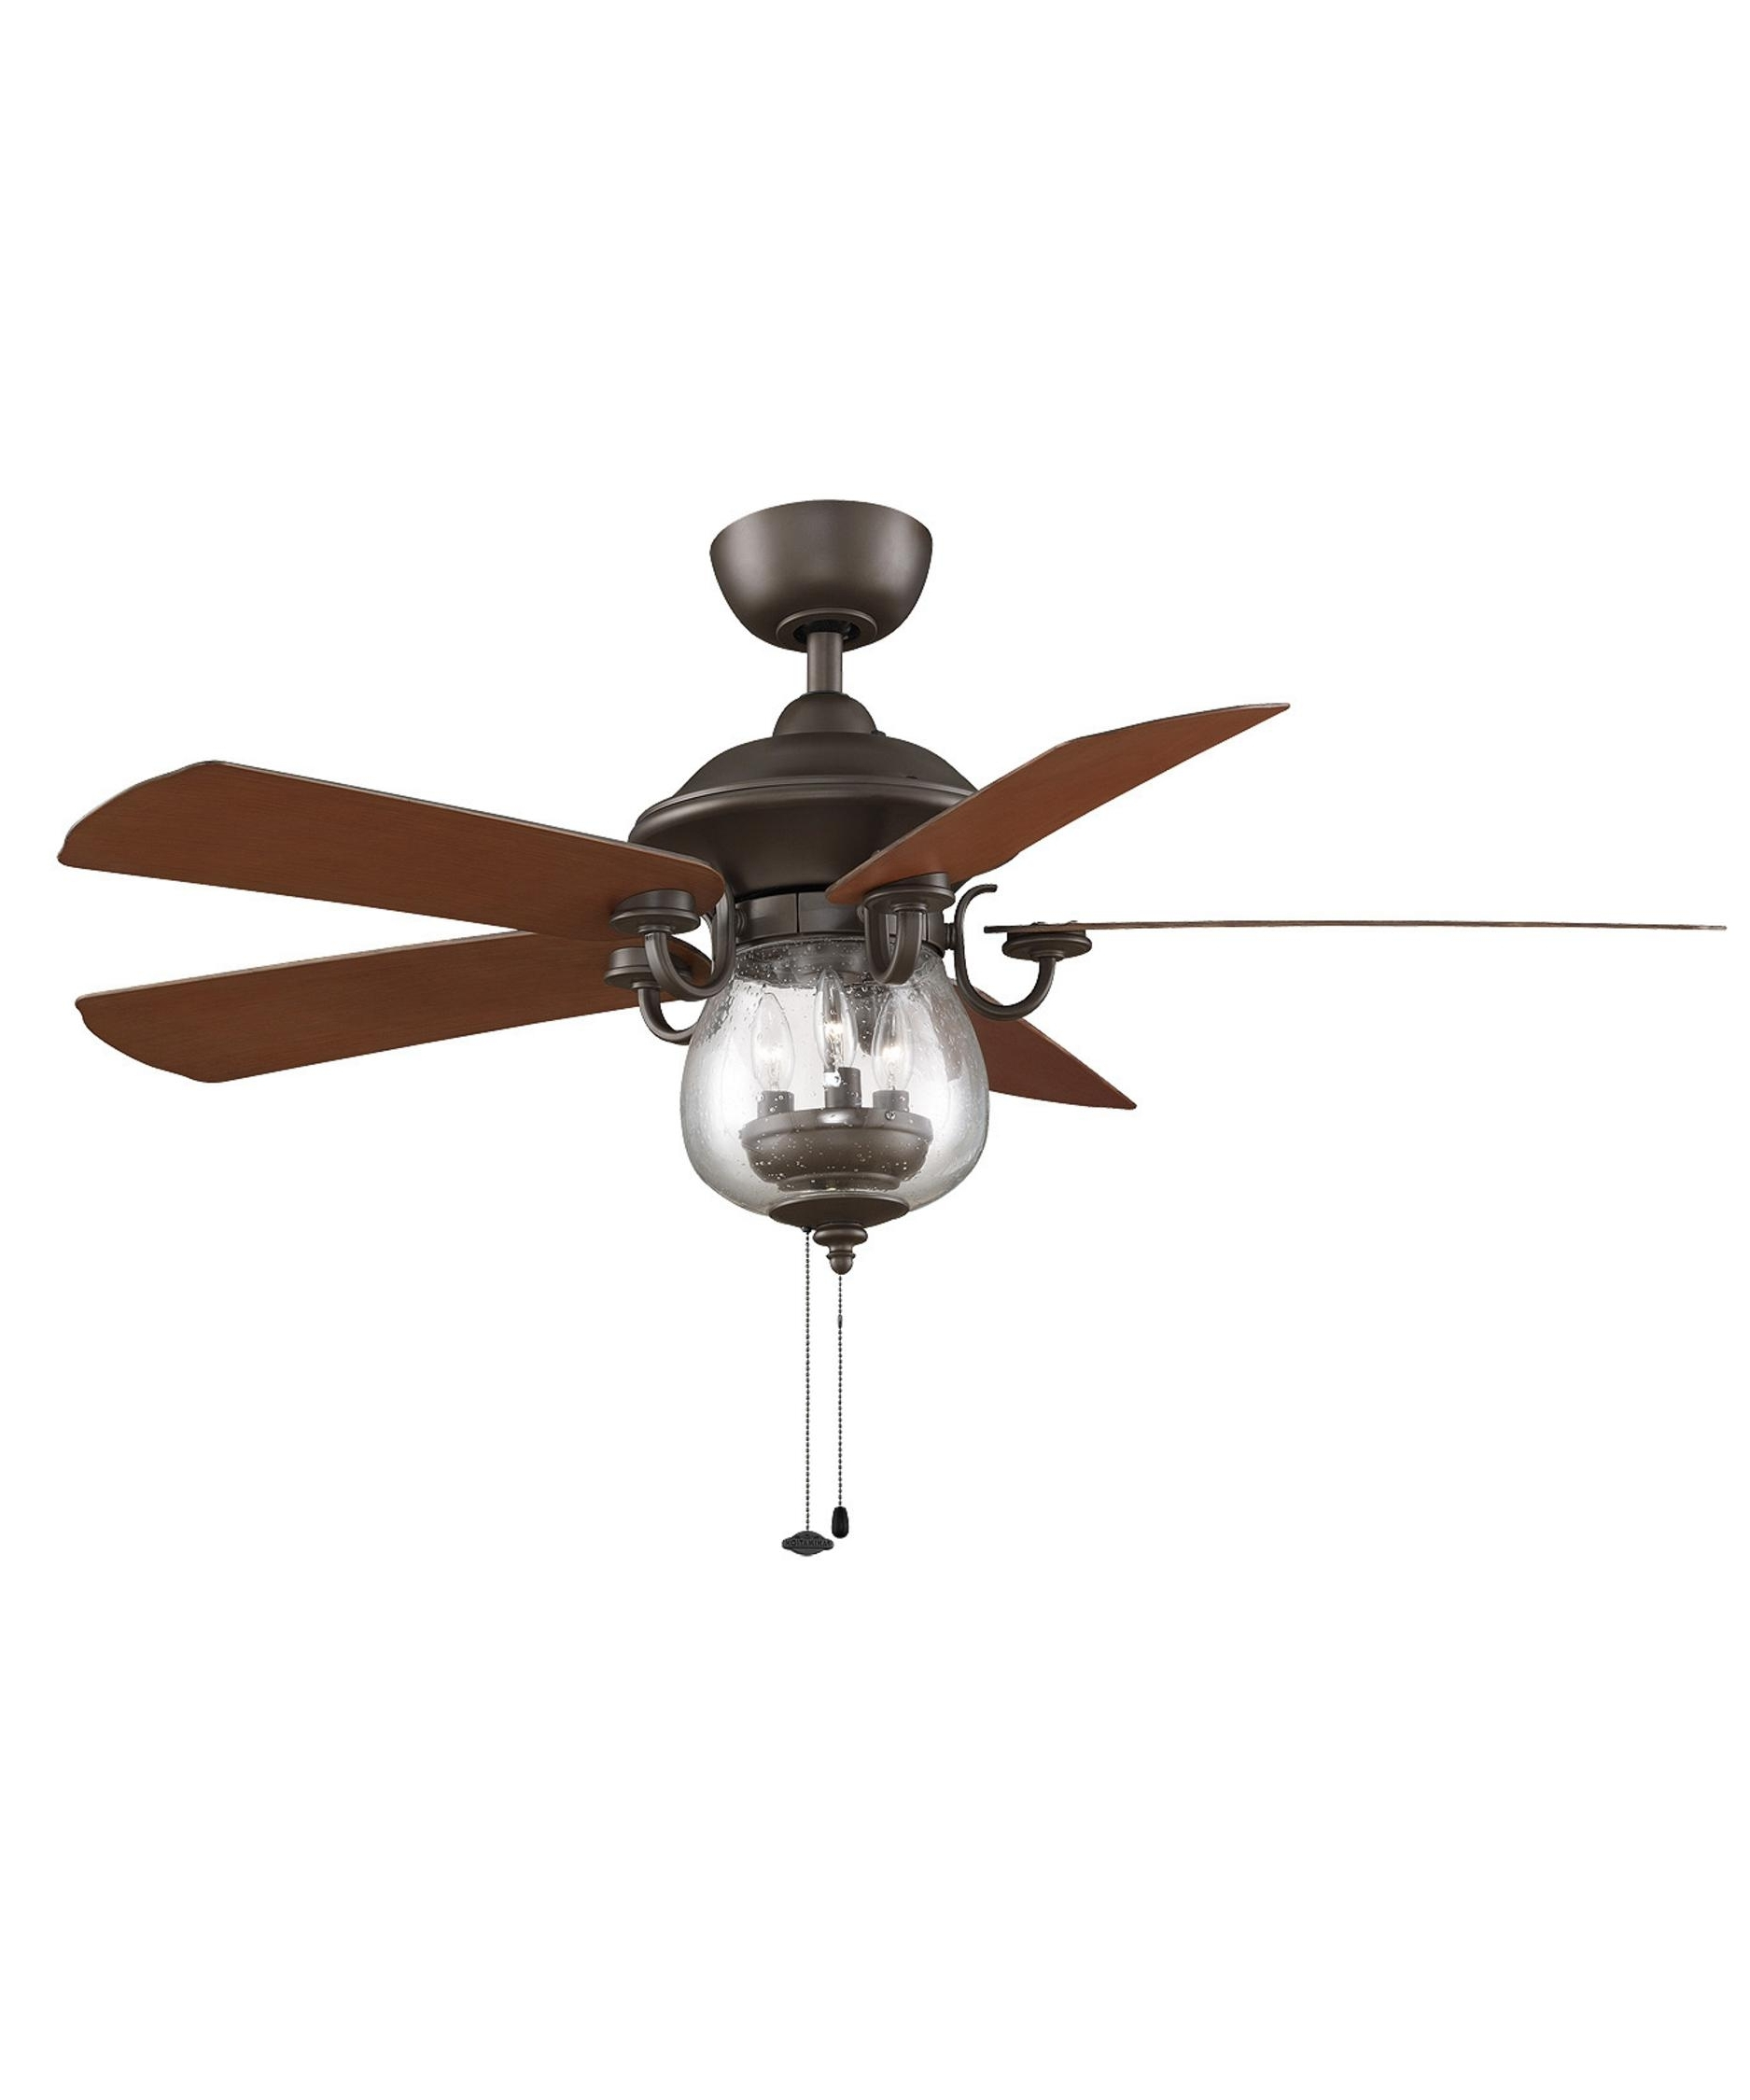 Capitol Regarding Current 52 Inch Outdoor Ceiling Fans With Lights (View 9 of 20)